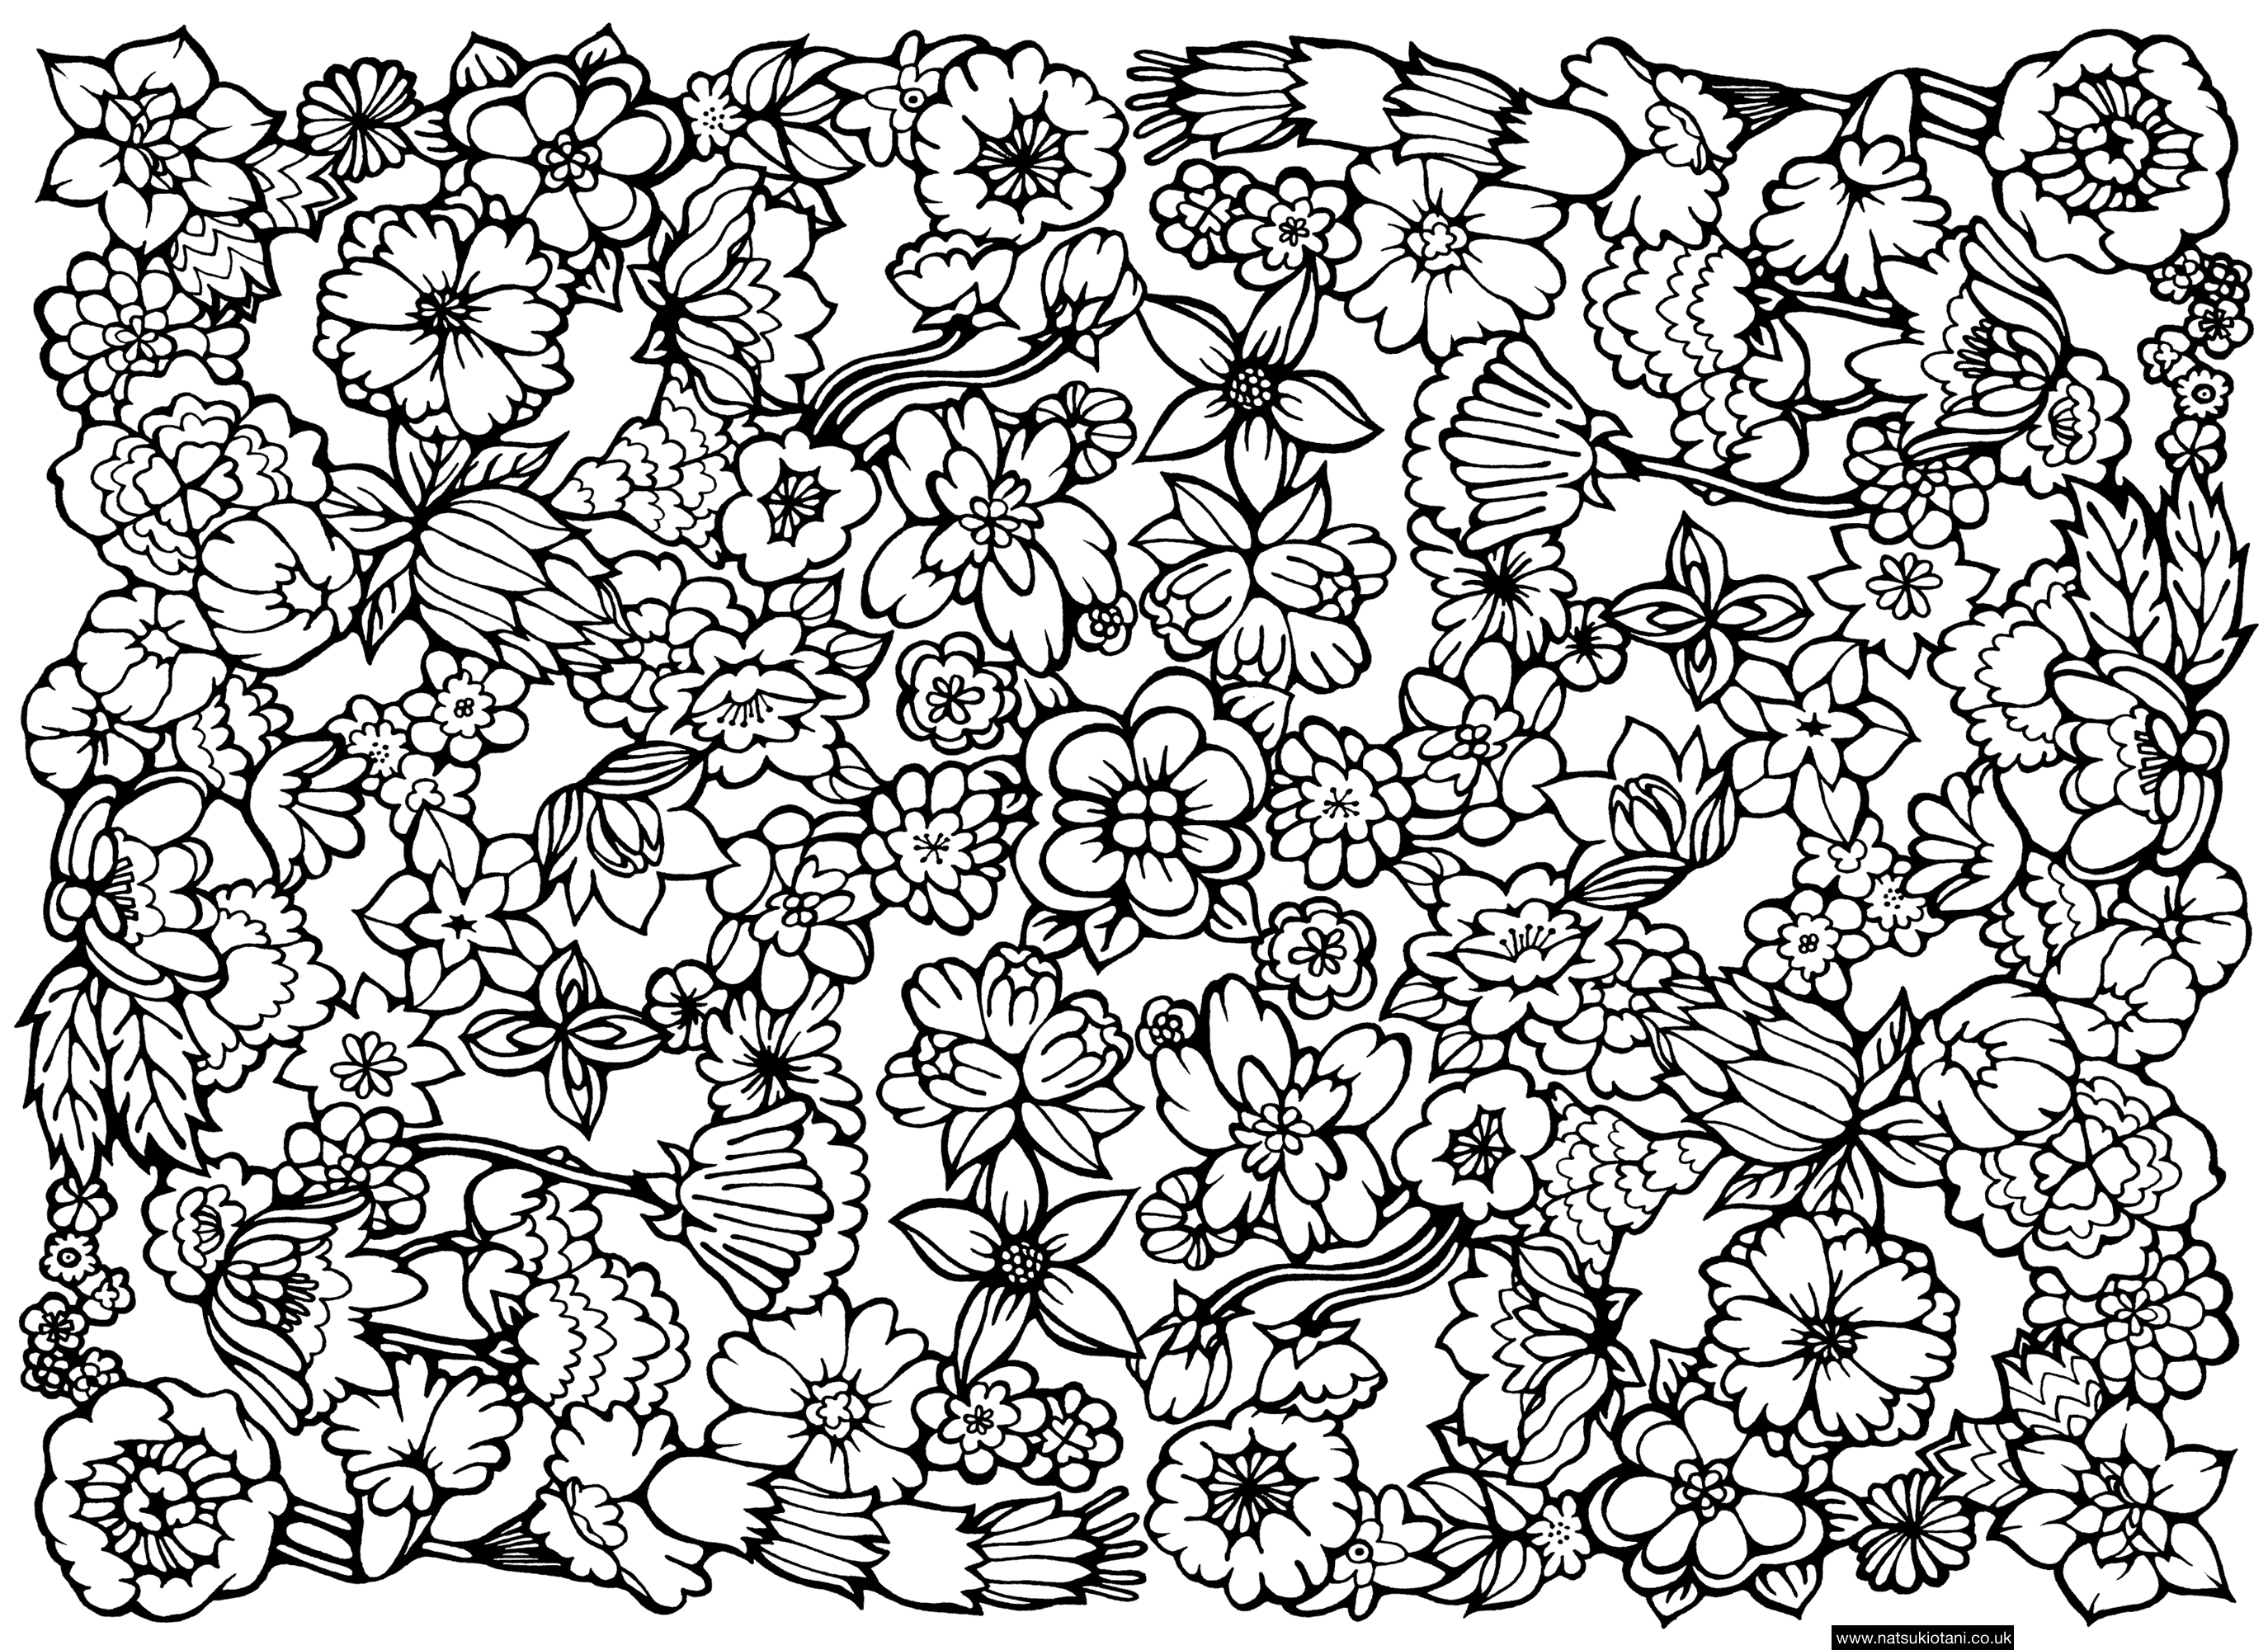 coloring pages for girls designs aztec pattern coloring pages at getcoloringscom free designs girls pages for coloring